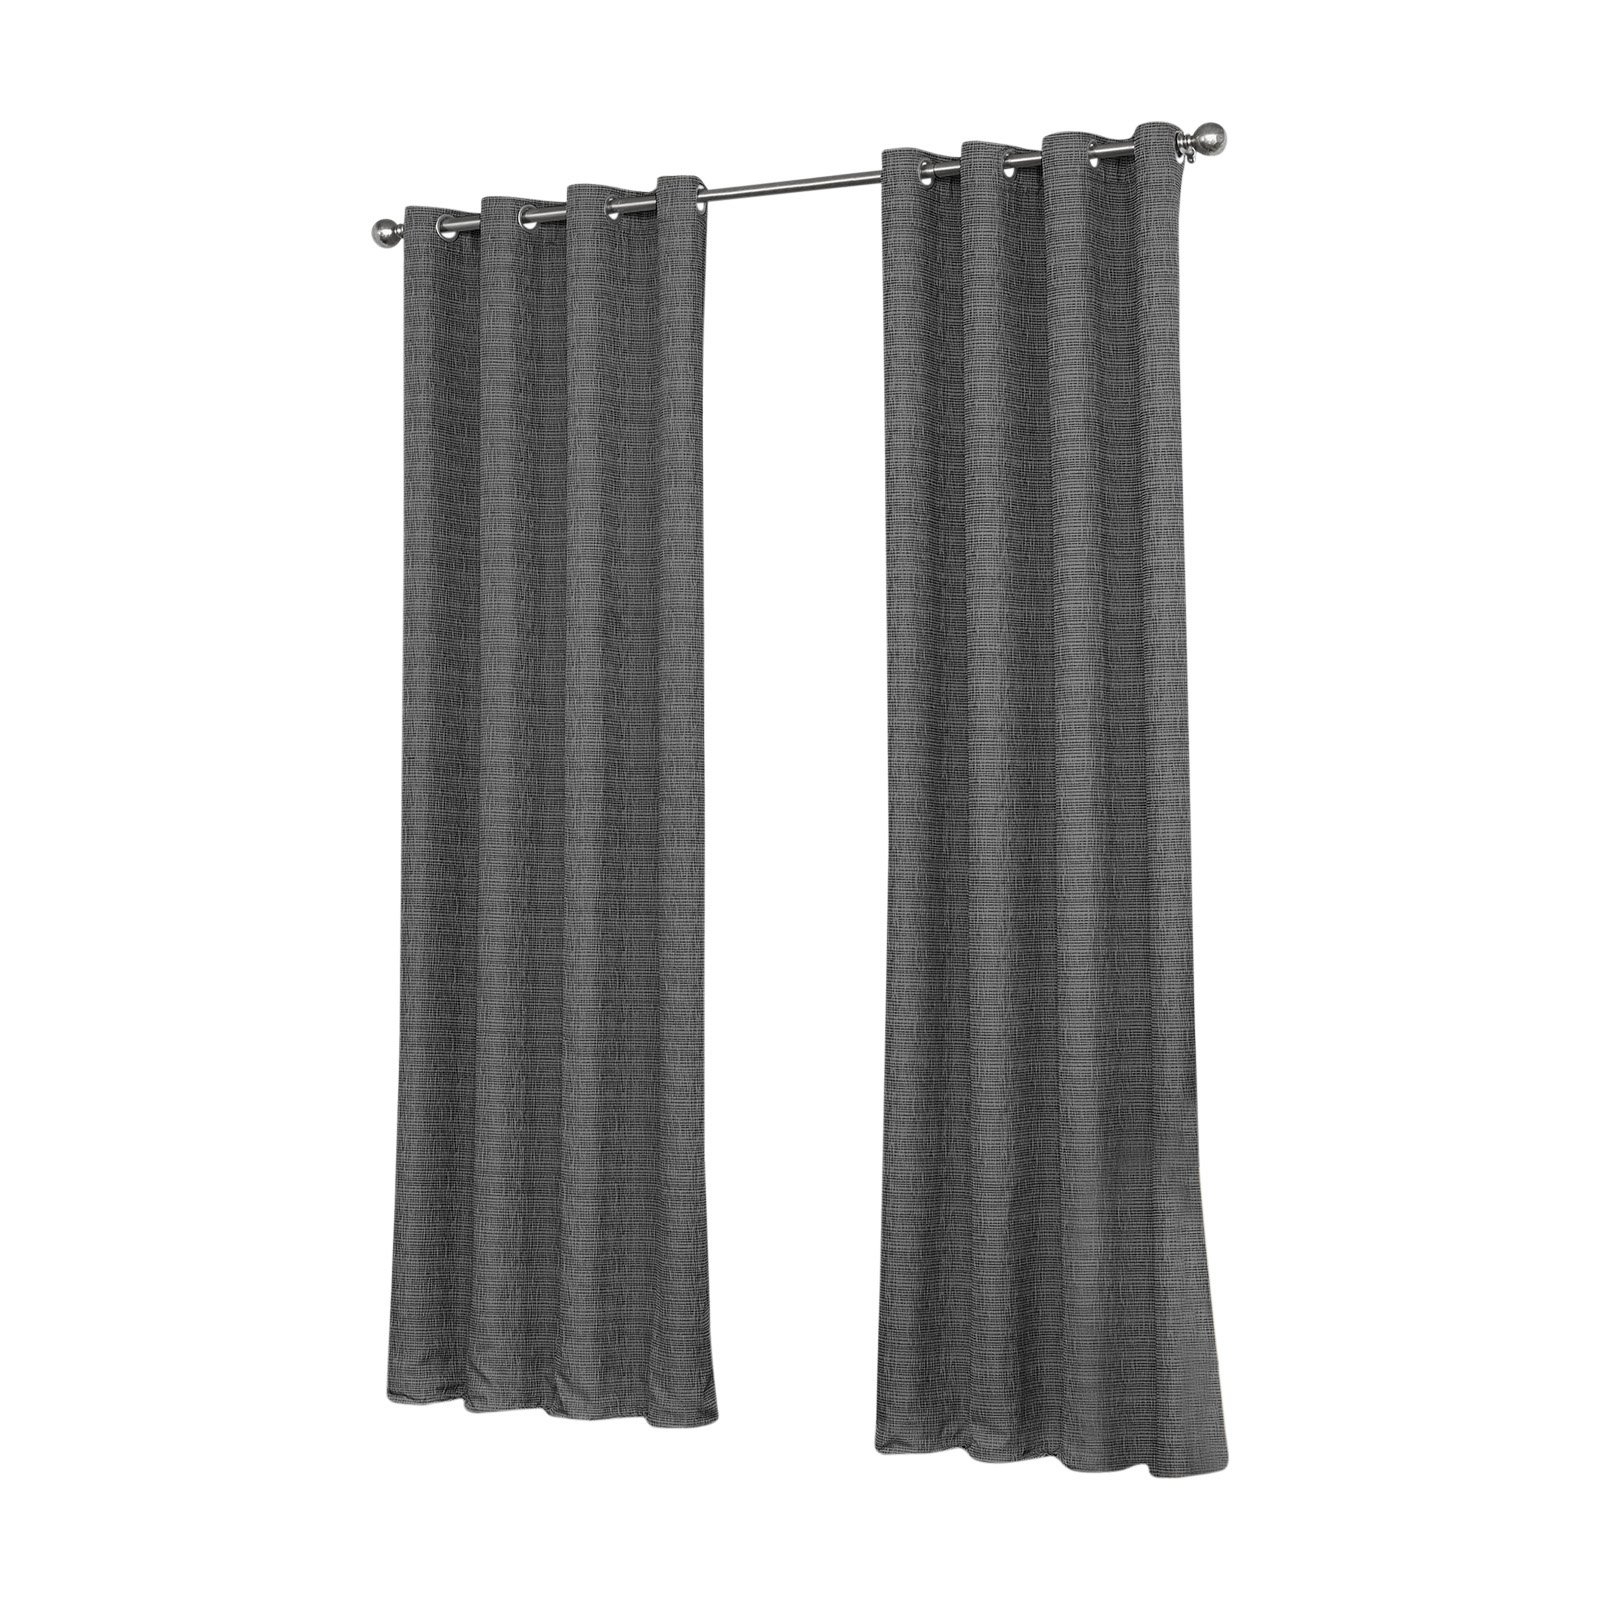 Eclipse Trevi Blackout Grommet Window Curtain Panels Intended For Well Known Eclipse Trevi Blackout Grommet Curtain (Gallery 8 of 20)